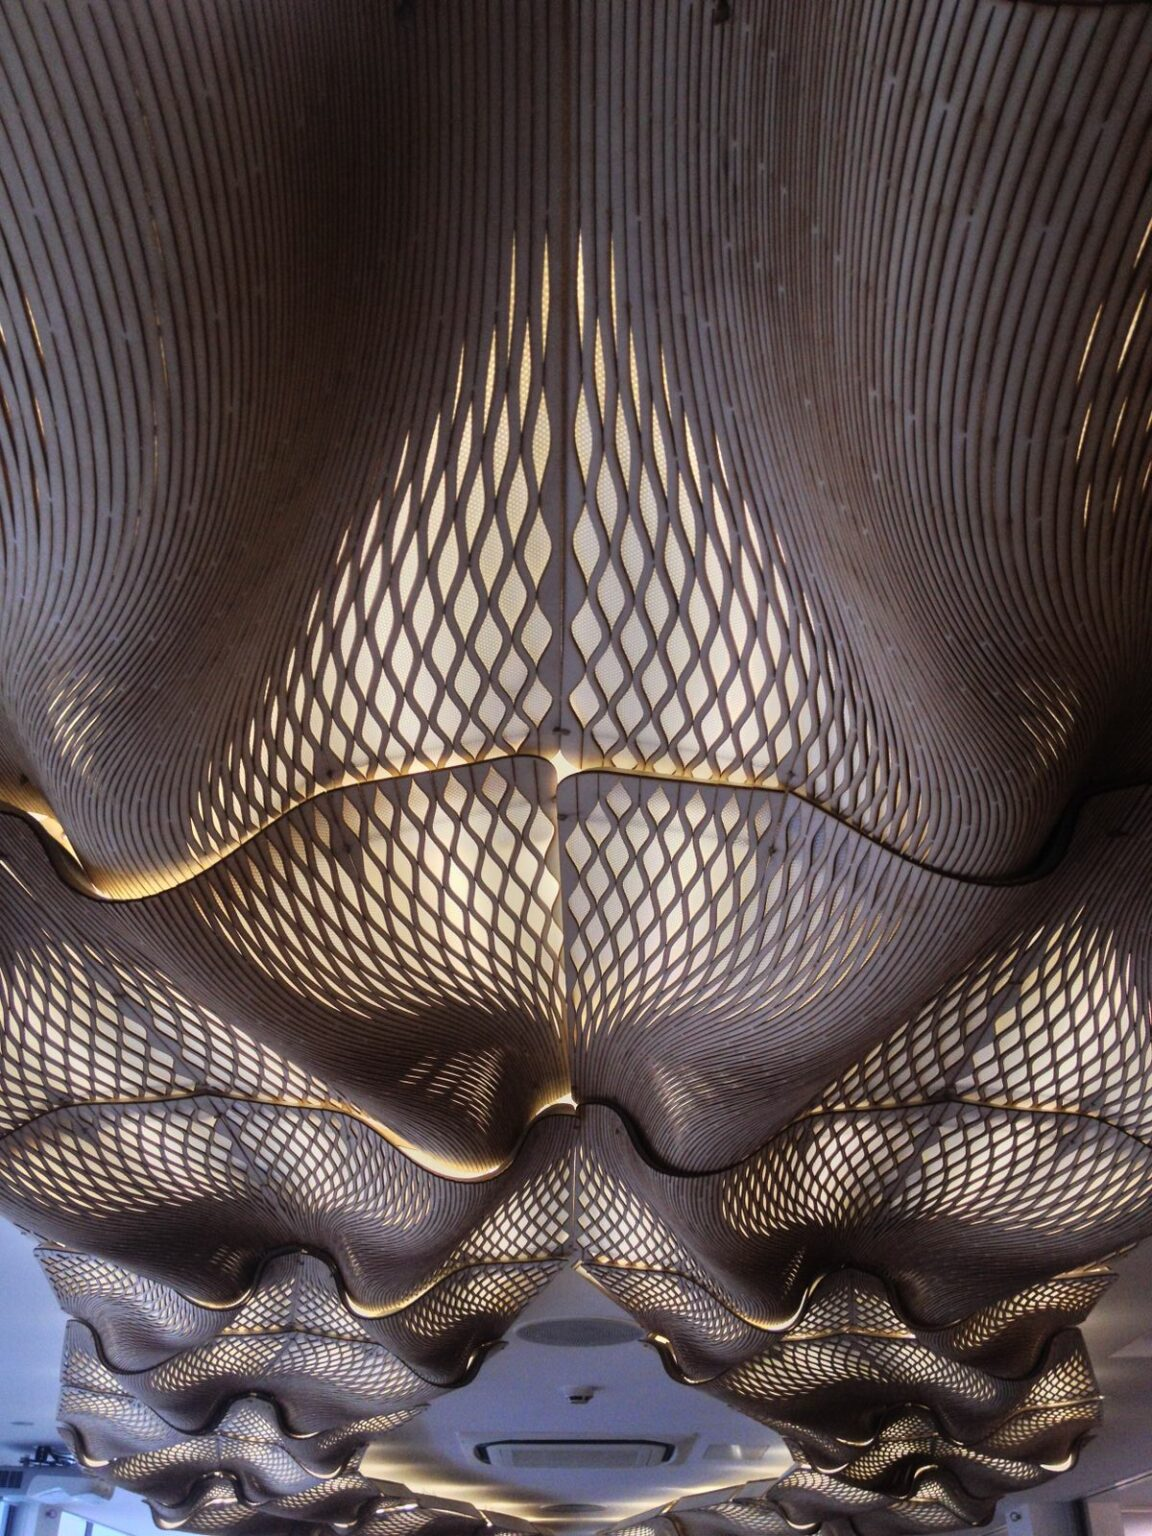 Mamou-Mani's Wooden Waves - a human-AI collaboration - is made of plywood lattice.